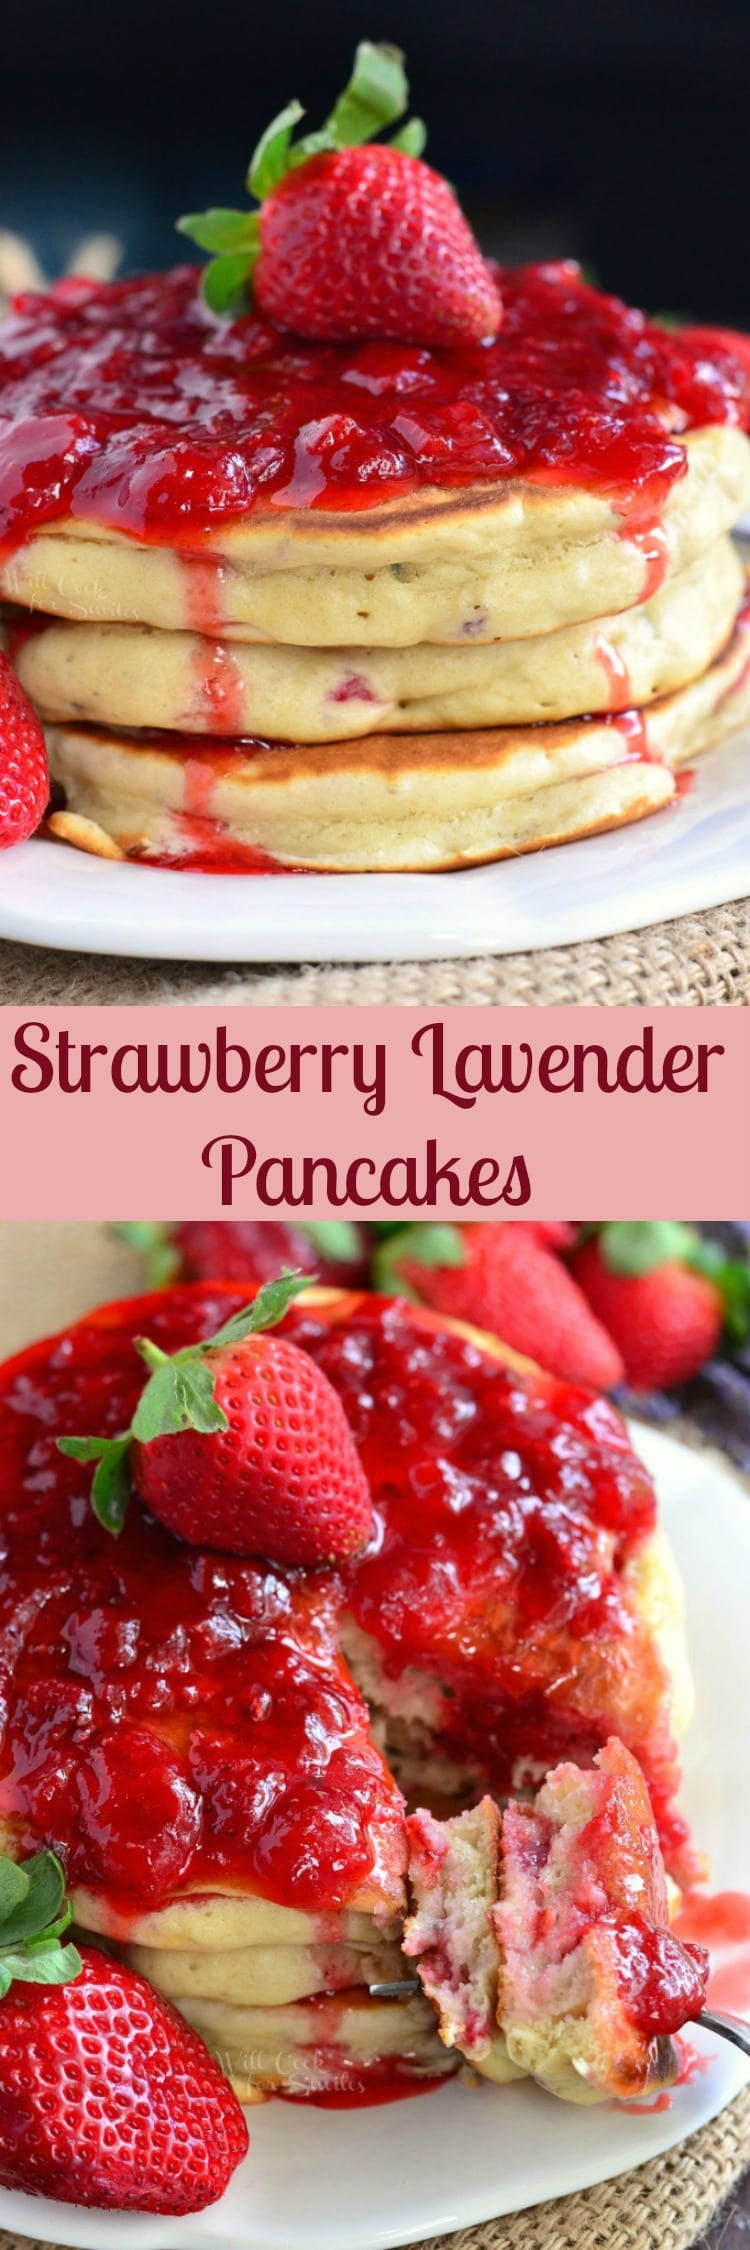 collage top photo Strawberry Lavender Pancakes with strawberries and strawberries syrup on top on a white plate with a fork bottom photo Strawberry Lavender Pancakes with strawberries and strawberries syrup on top on a white plate with a fork